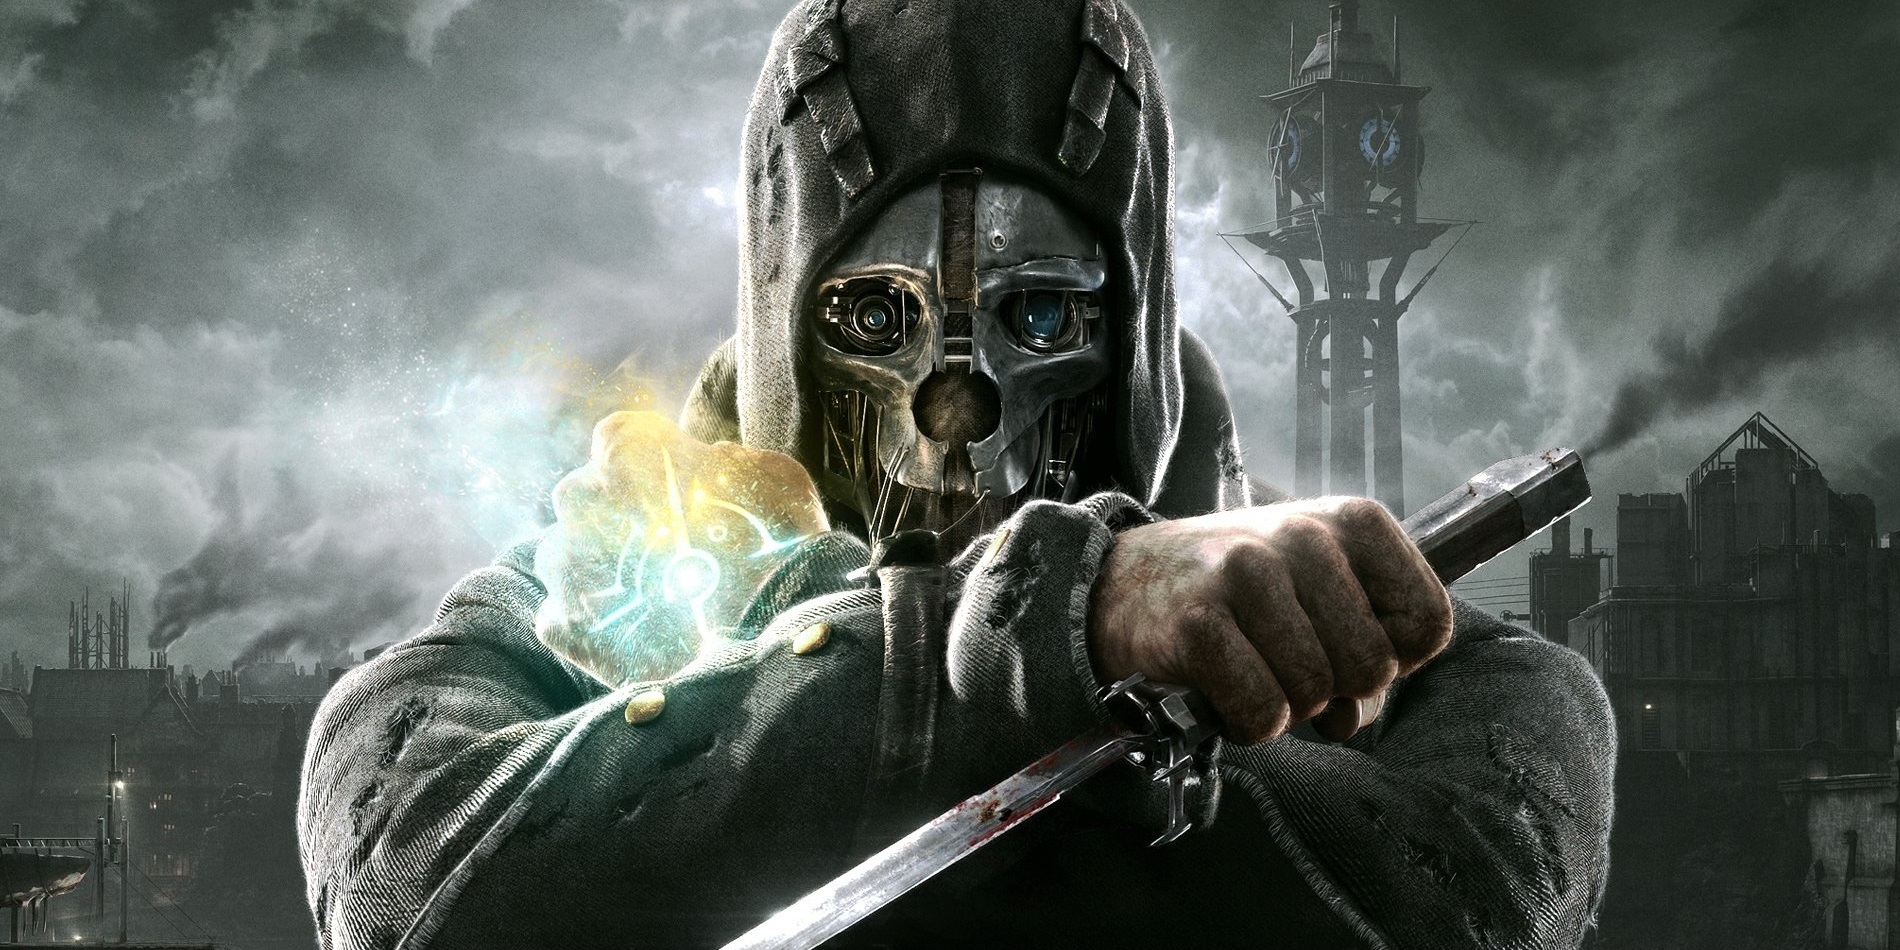 Review : Dishonored 2